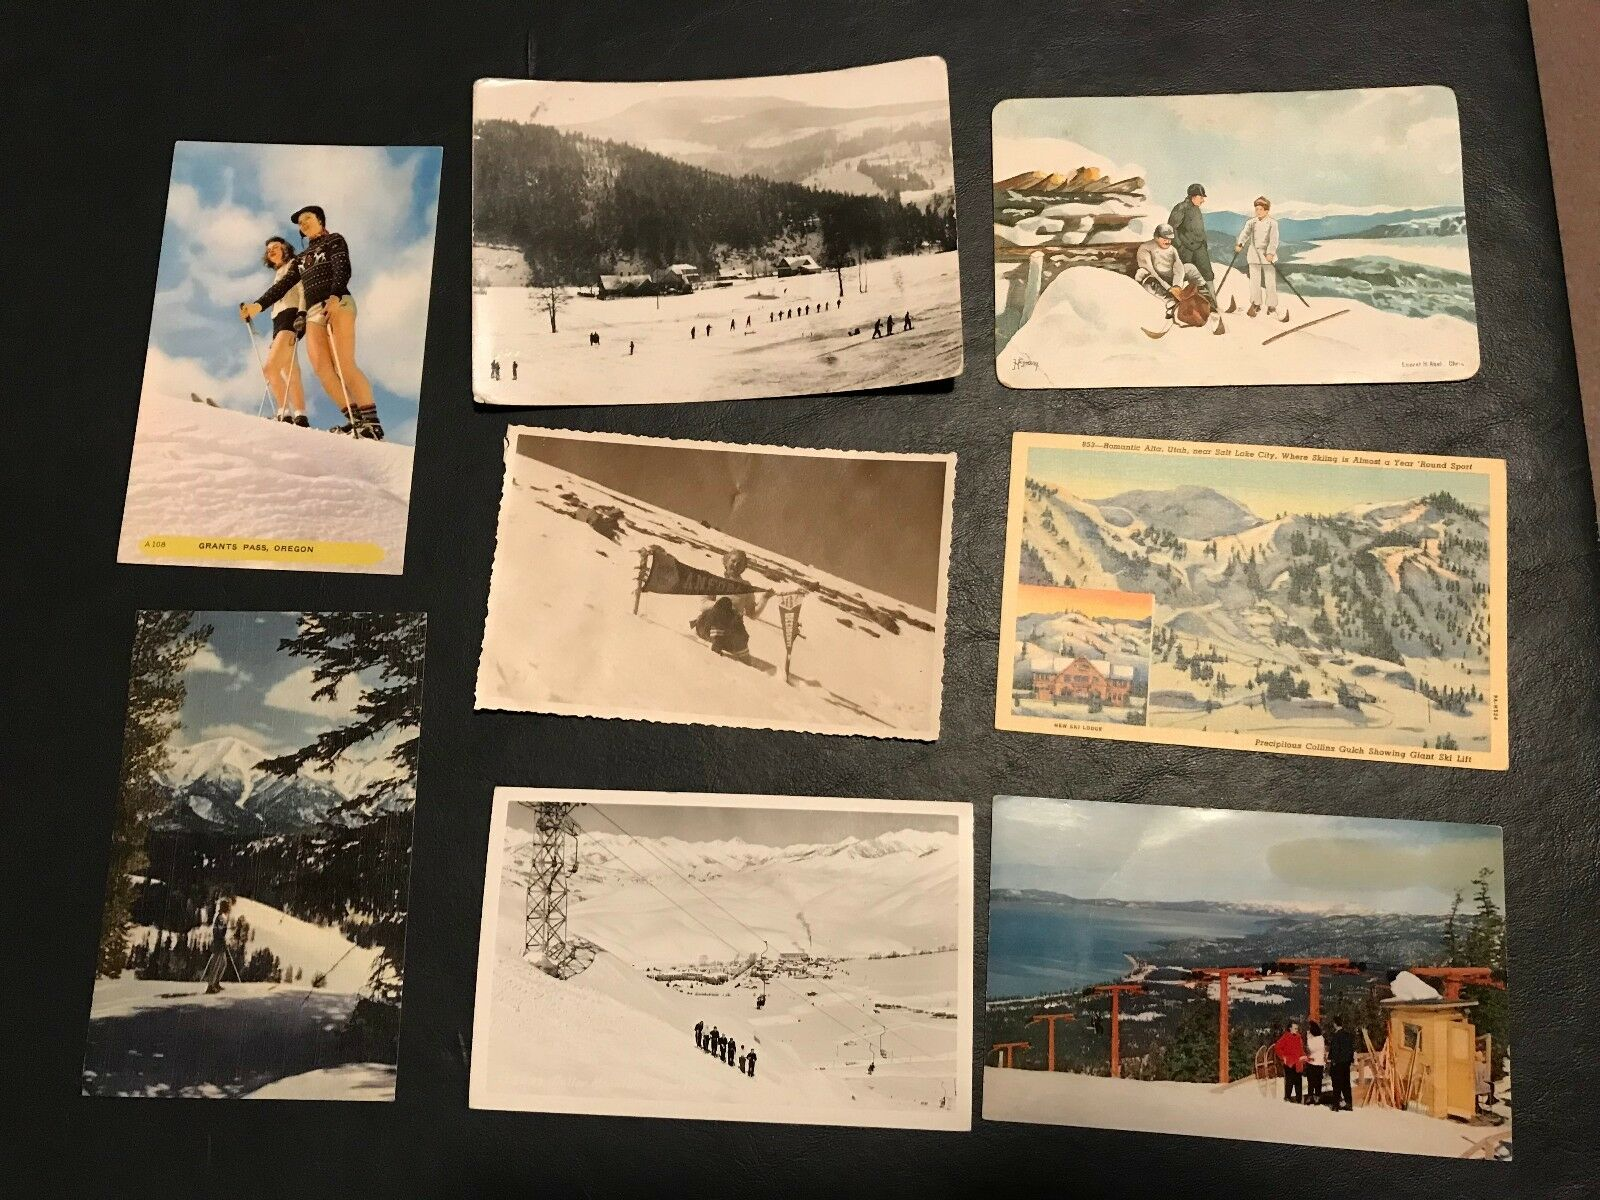 SKIING  covers postcards stamps photos fdc Alpine Alps snow winter rppc Olympics